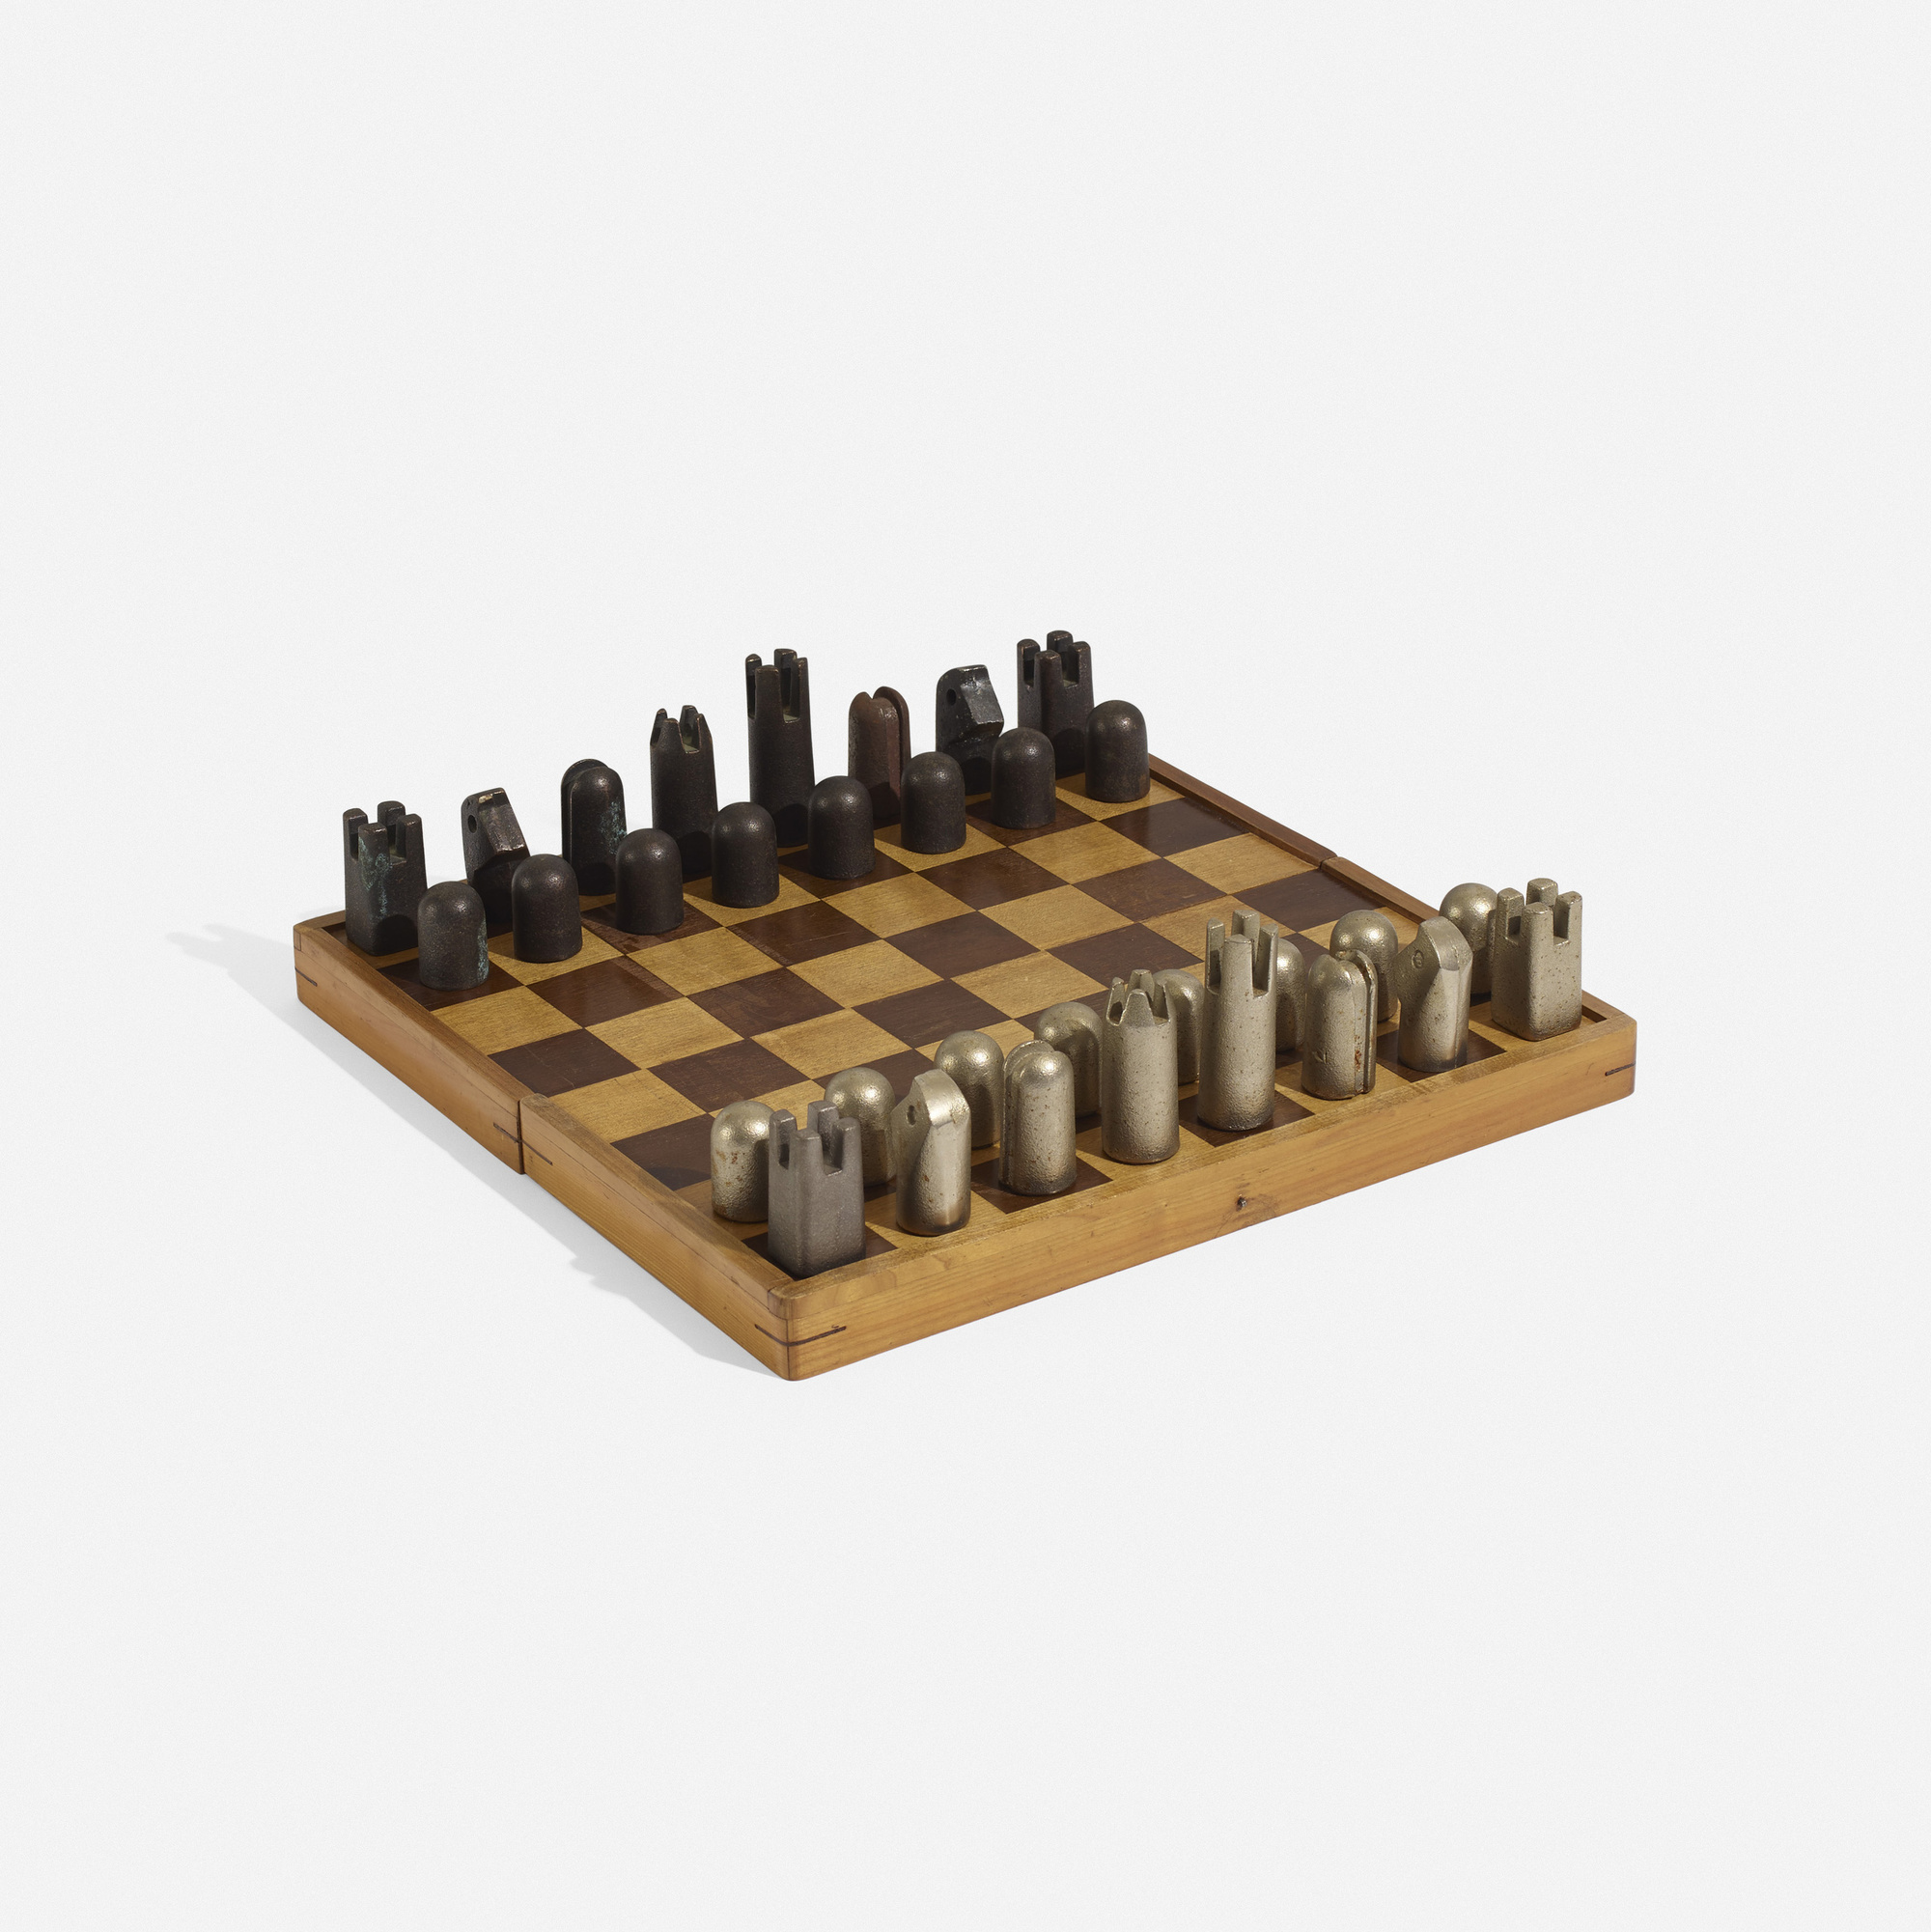 121: Carl Auböck III / chess set (1 of 4)